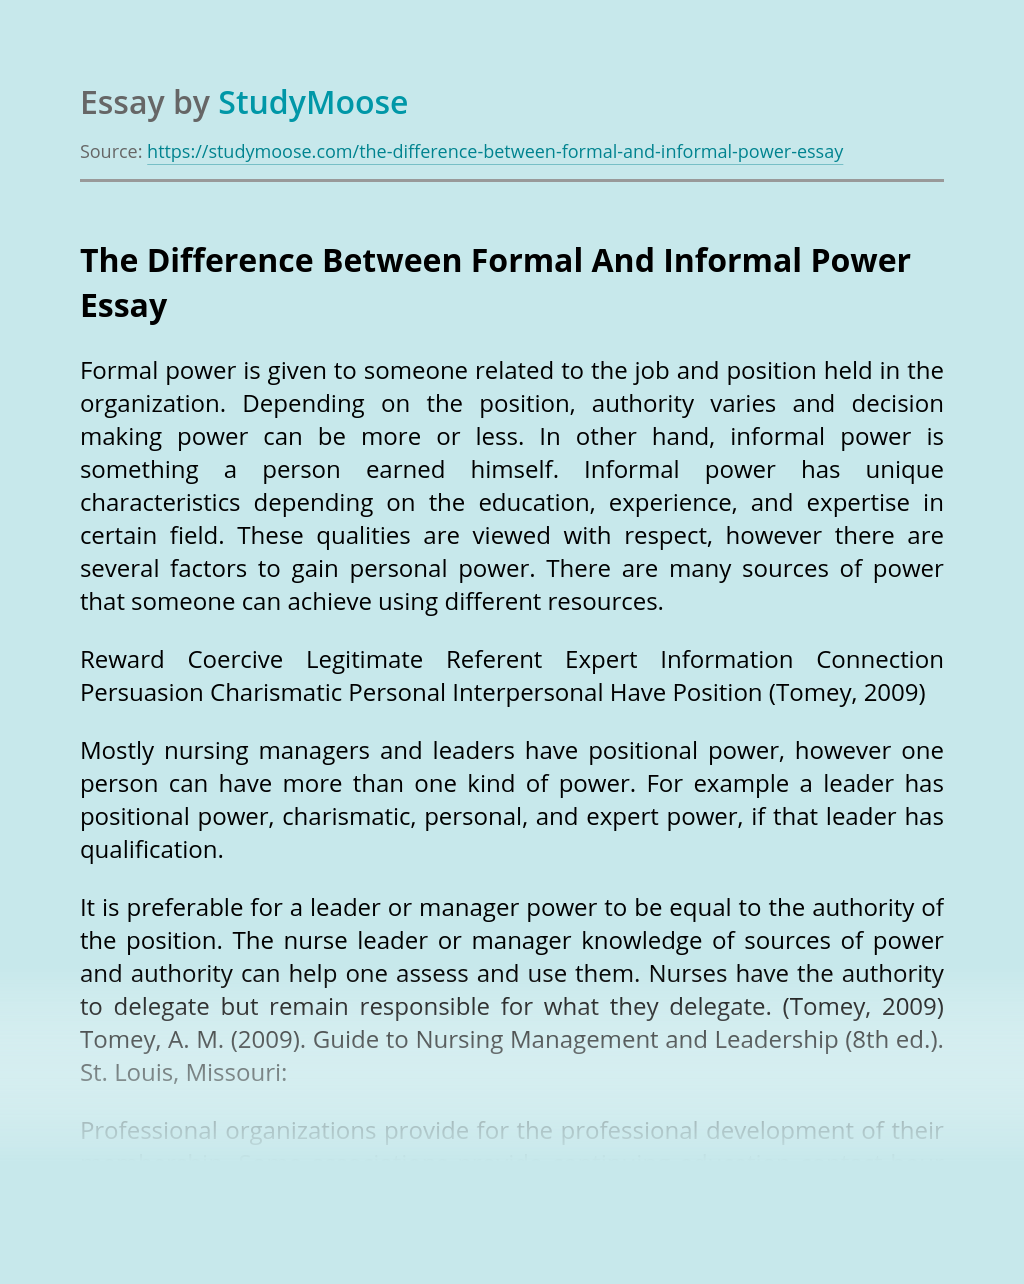 The Difference Between Formal And Informal Power